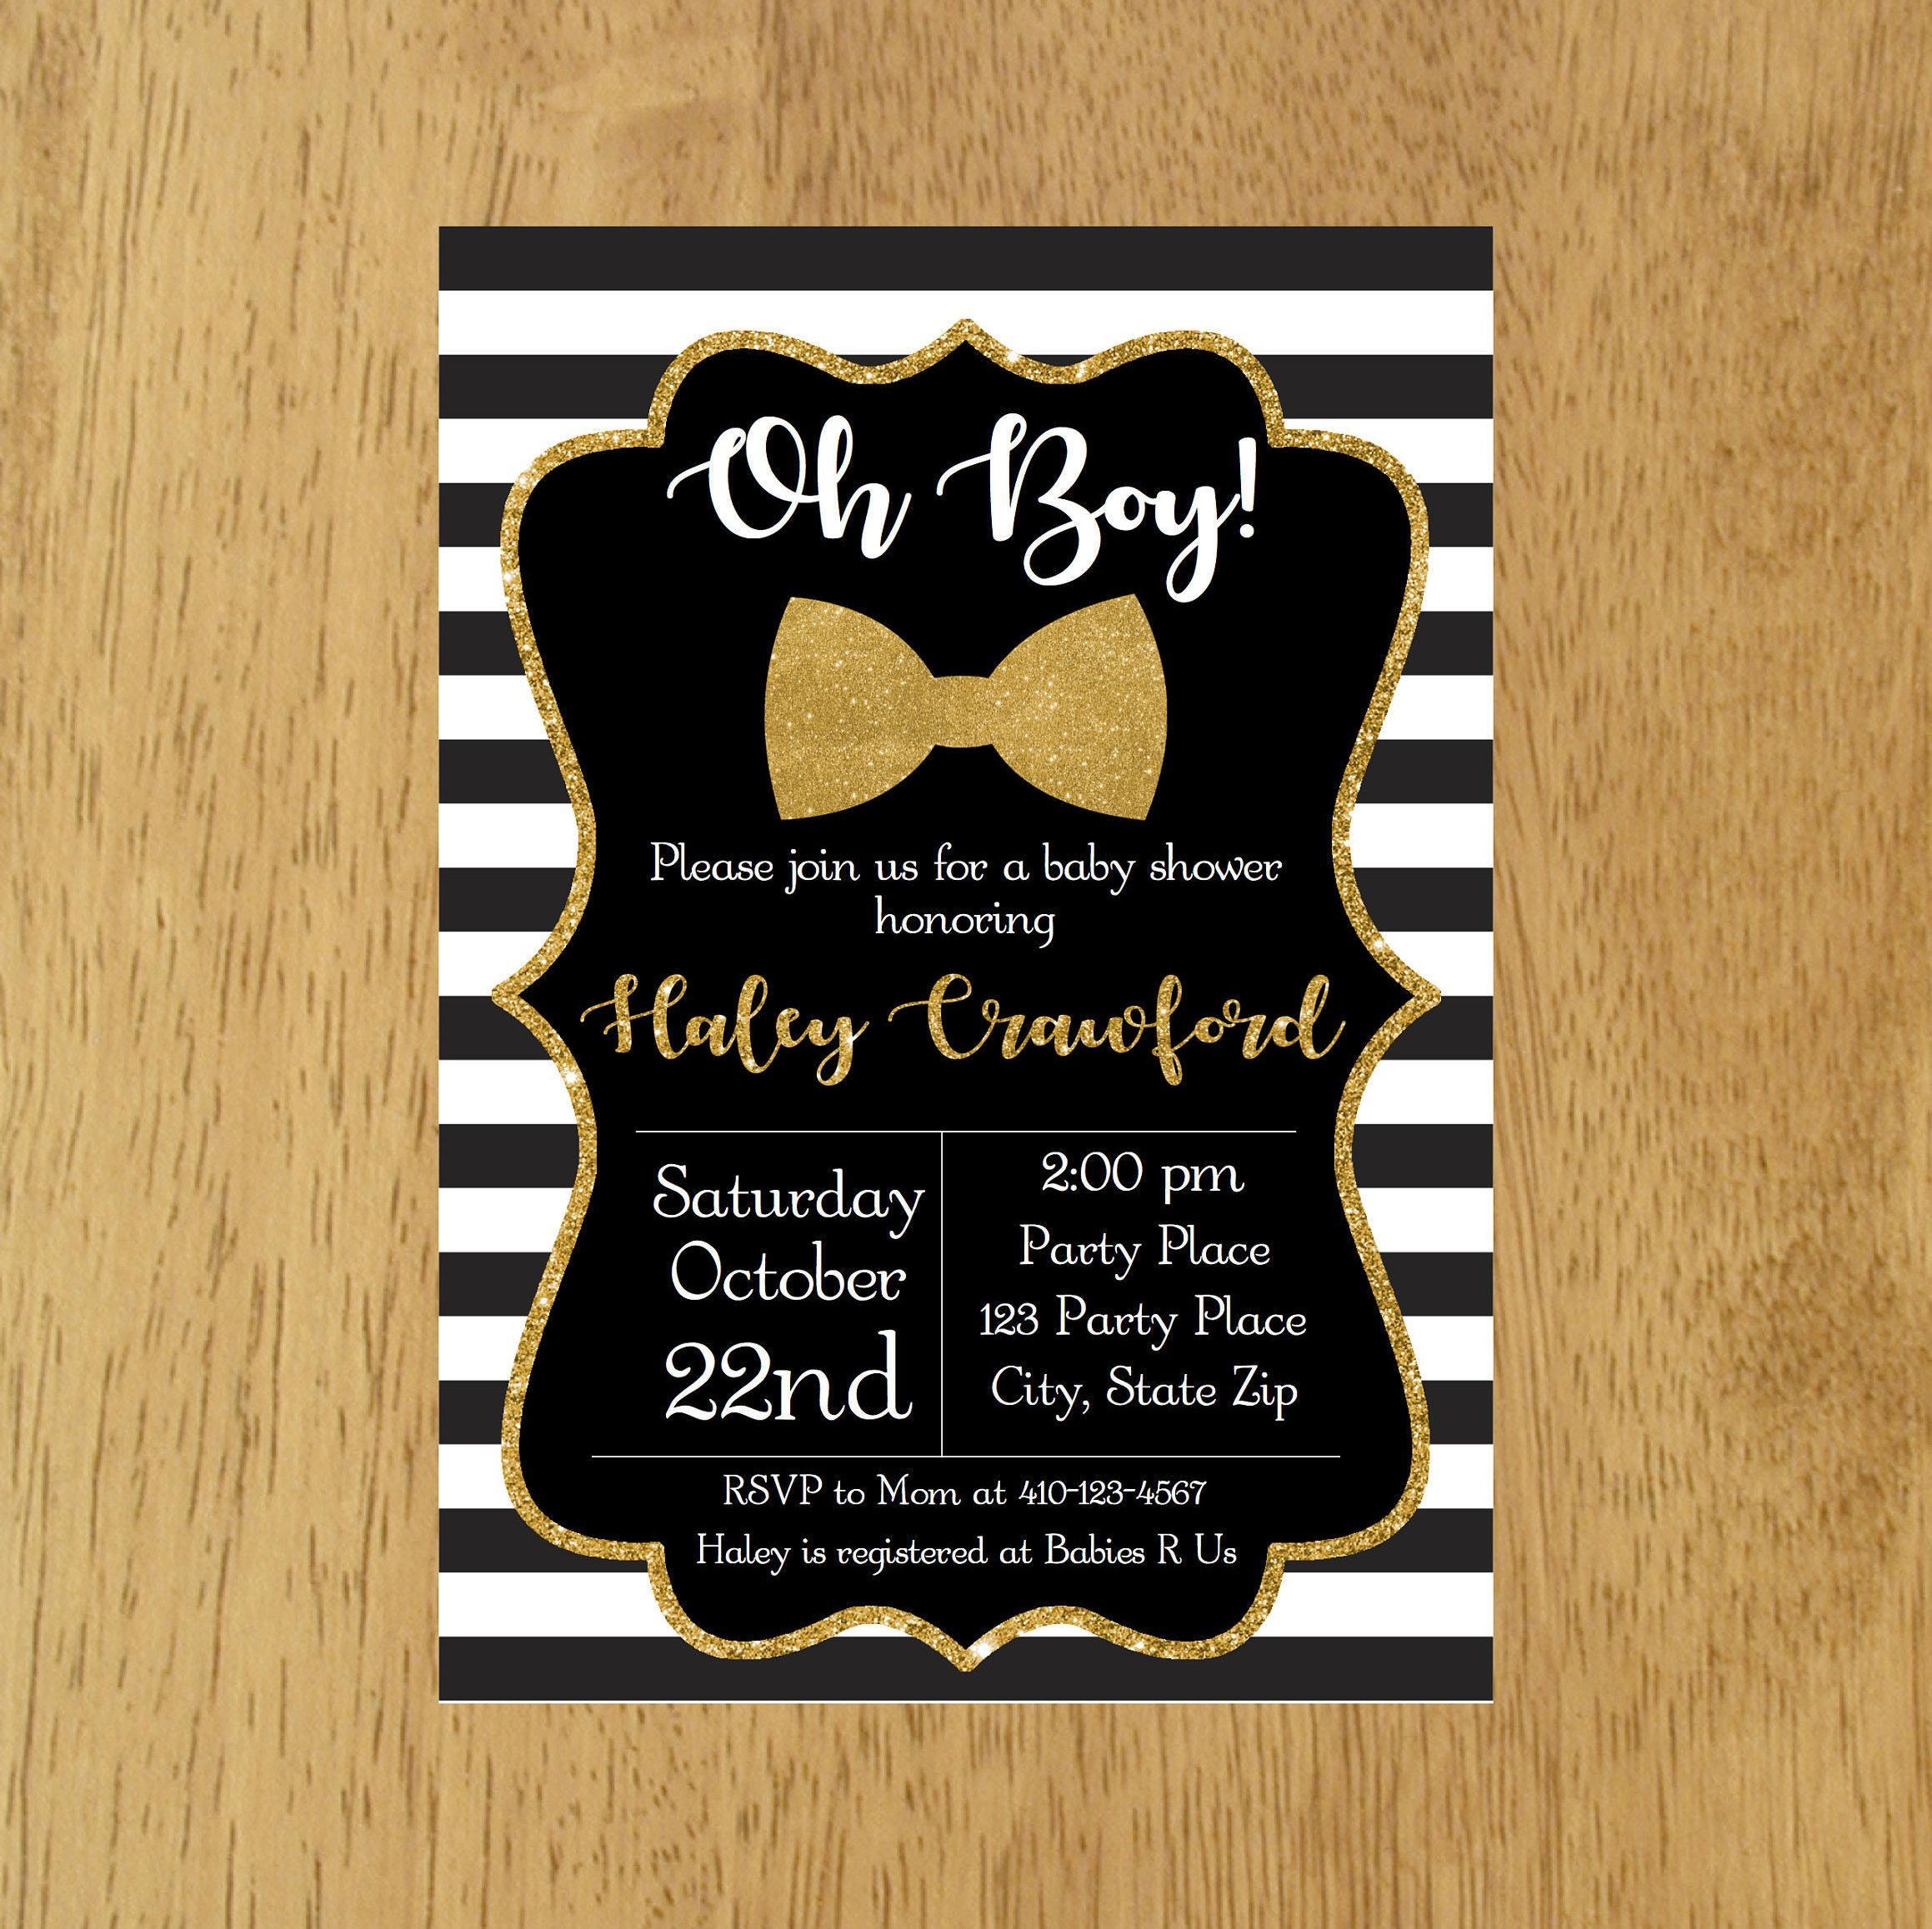 Little Man Baby Shower Invitation, Black and Gold Baby Invitation ...